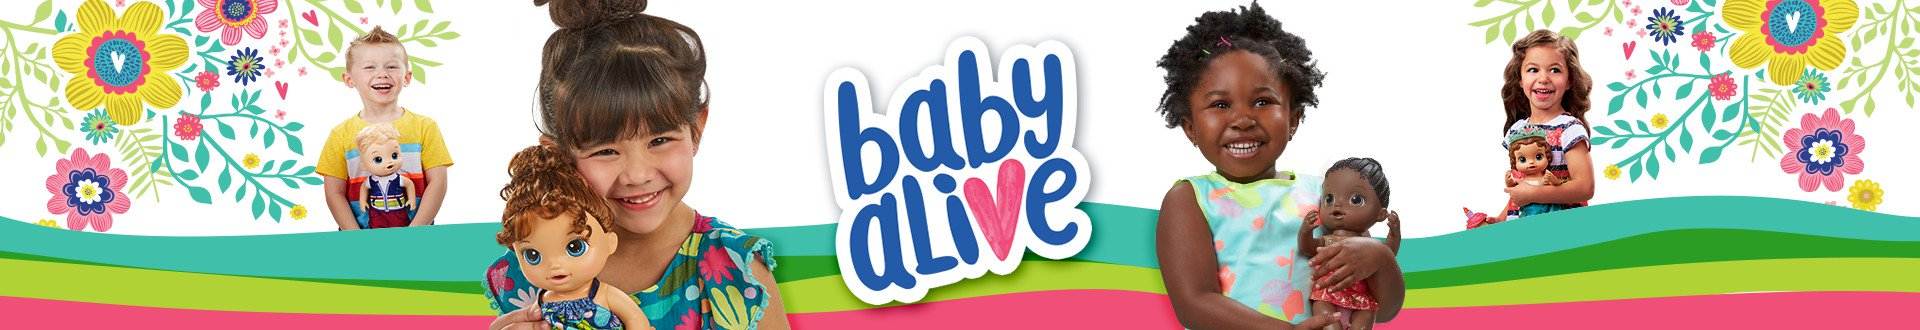 pgp_babyalive